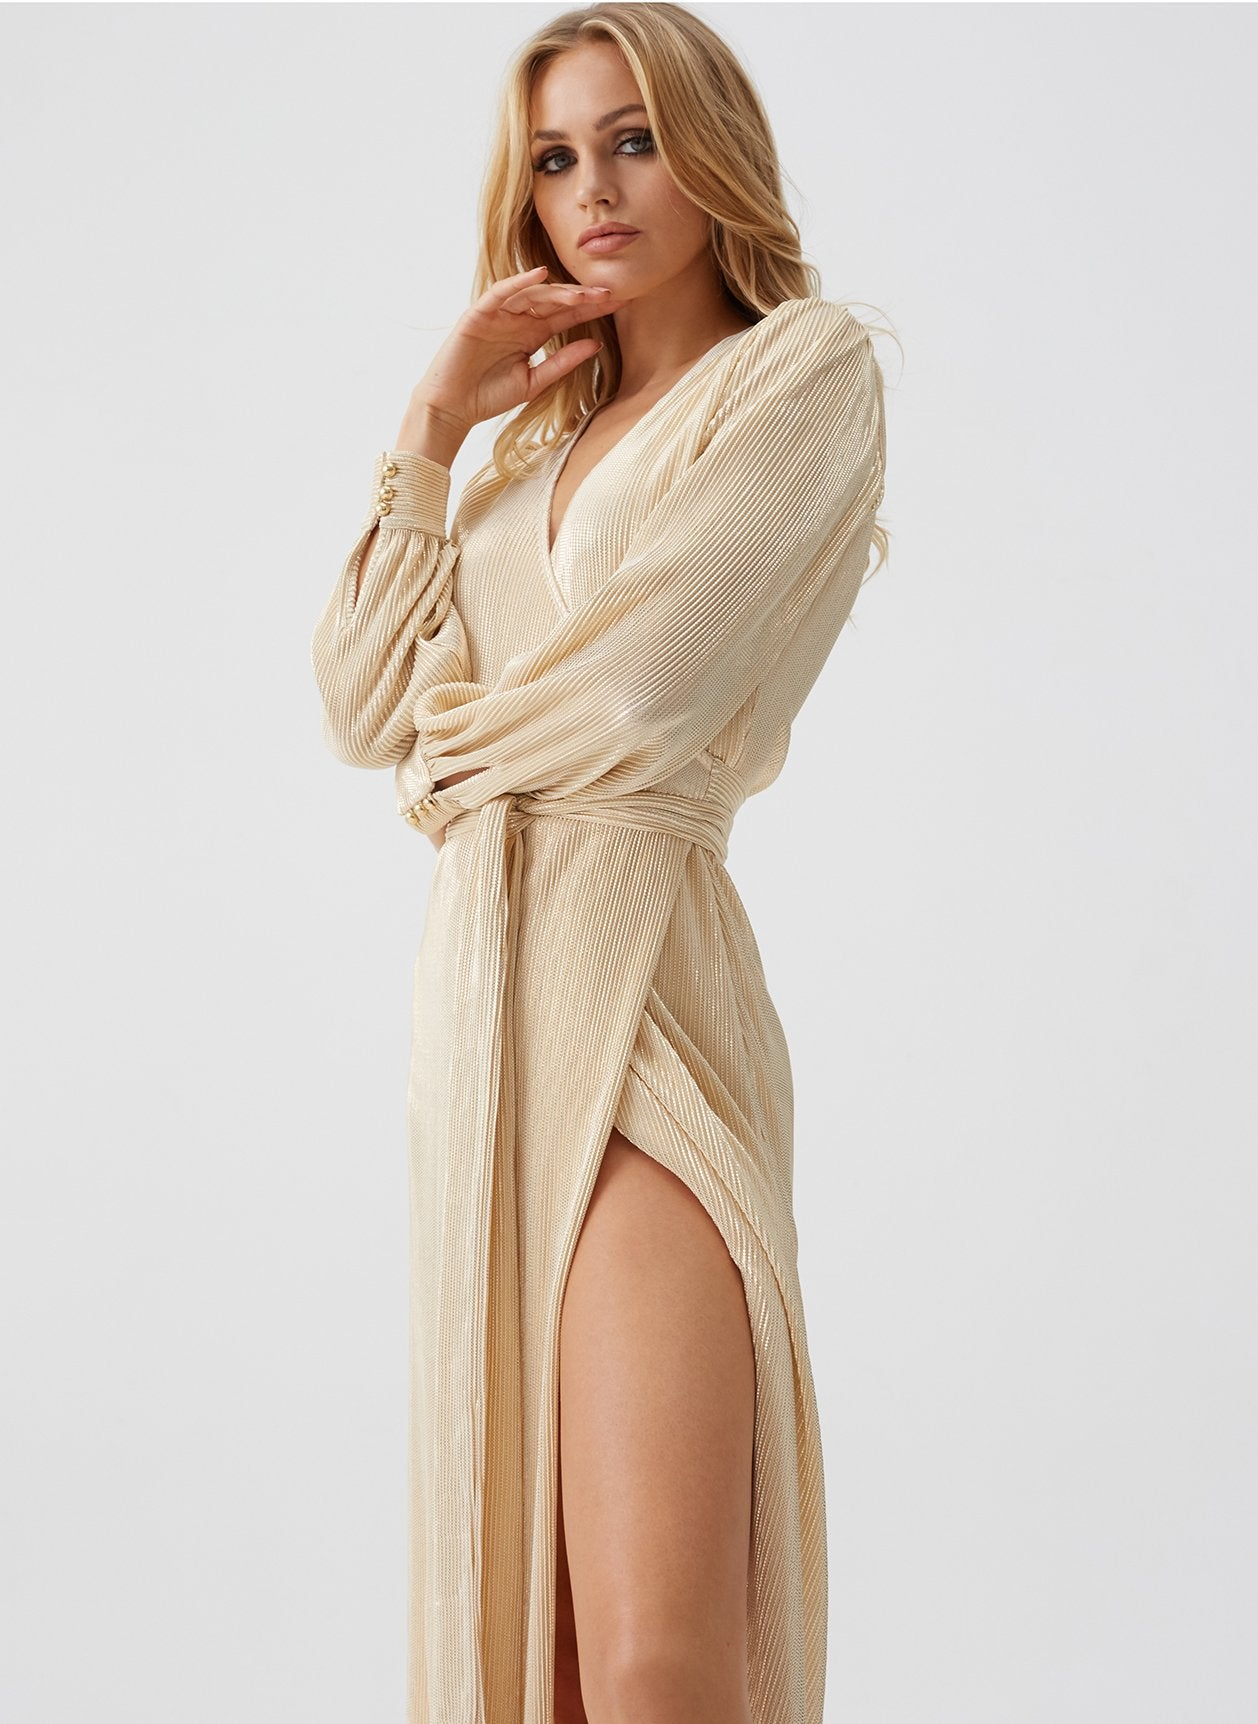 Bree Gold Wrap Maxi Dress